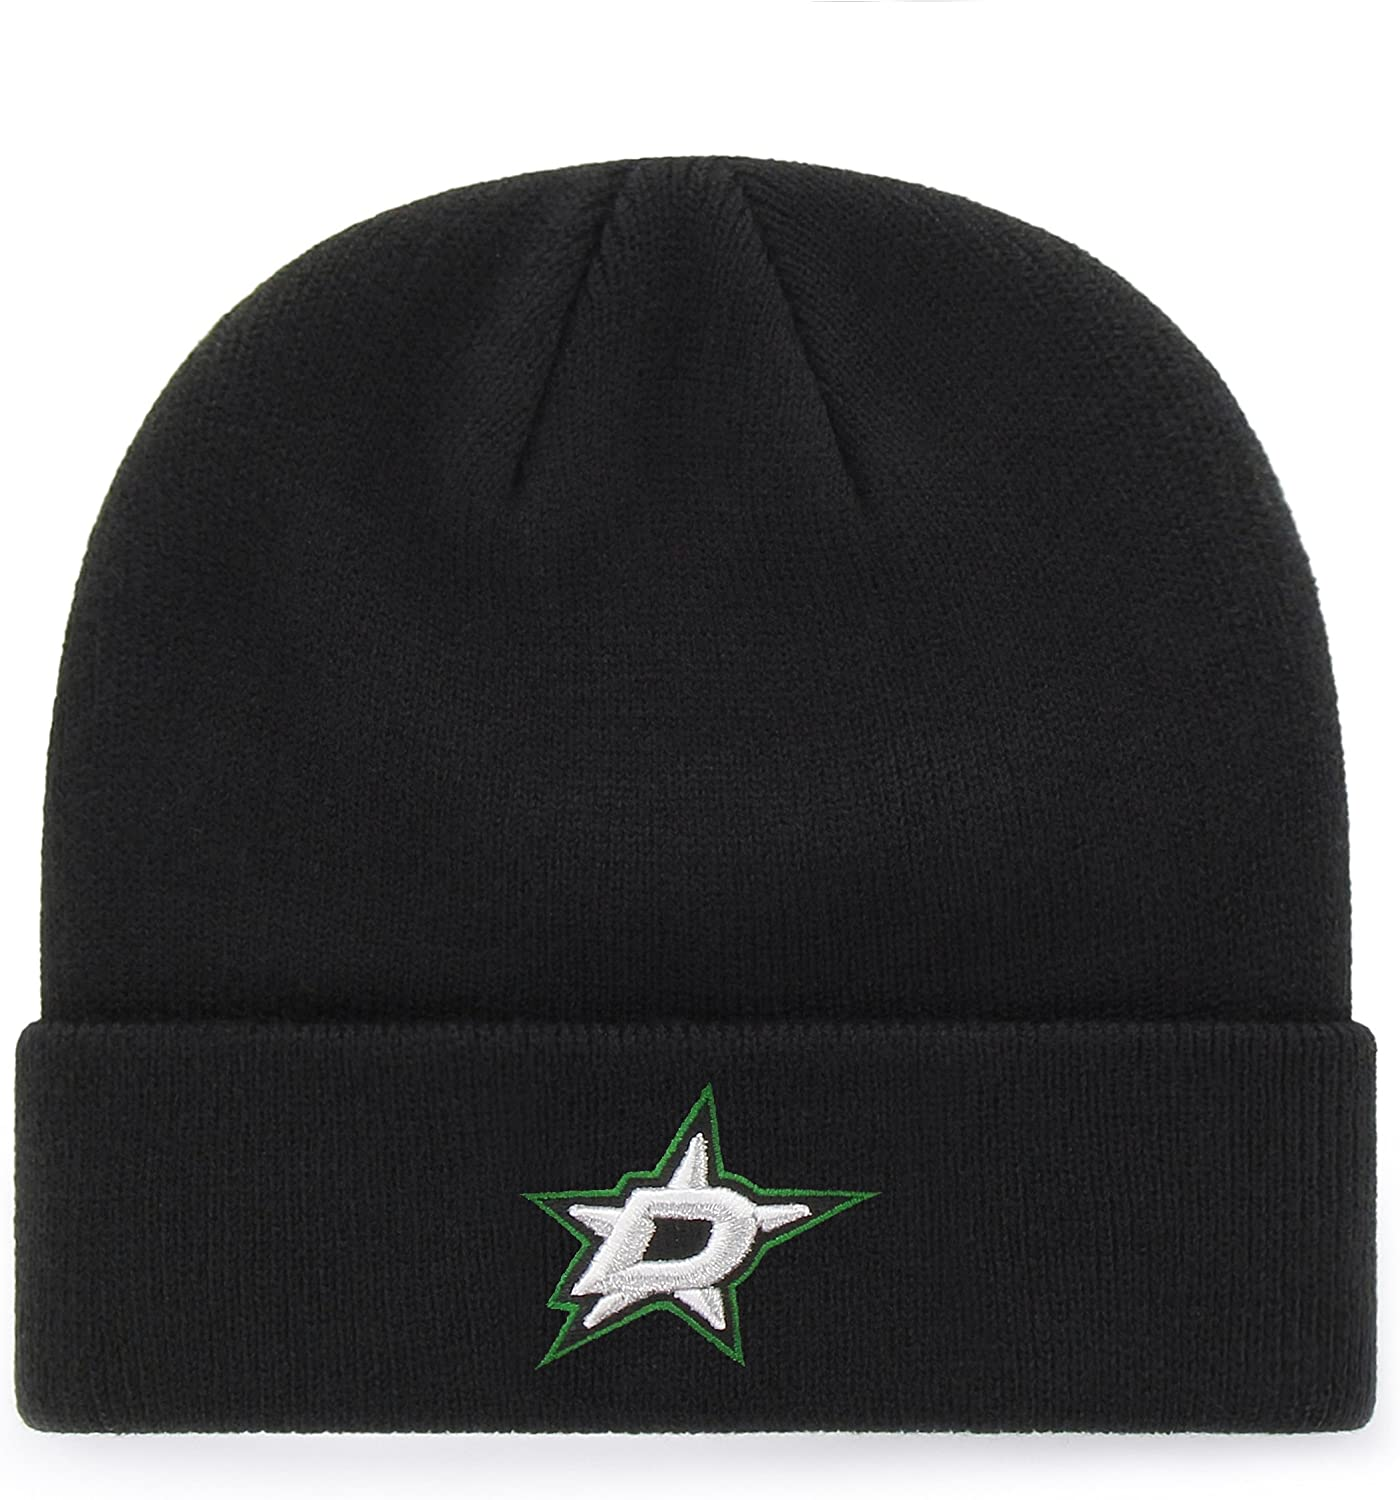 OTS NHL Mens Beanie Knit Cap